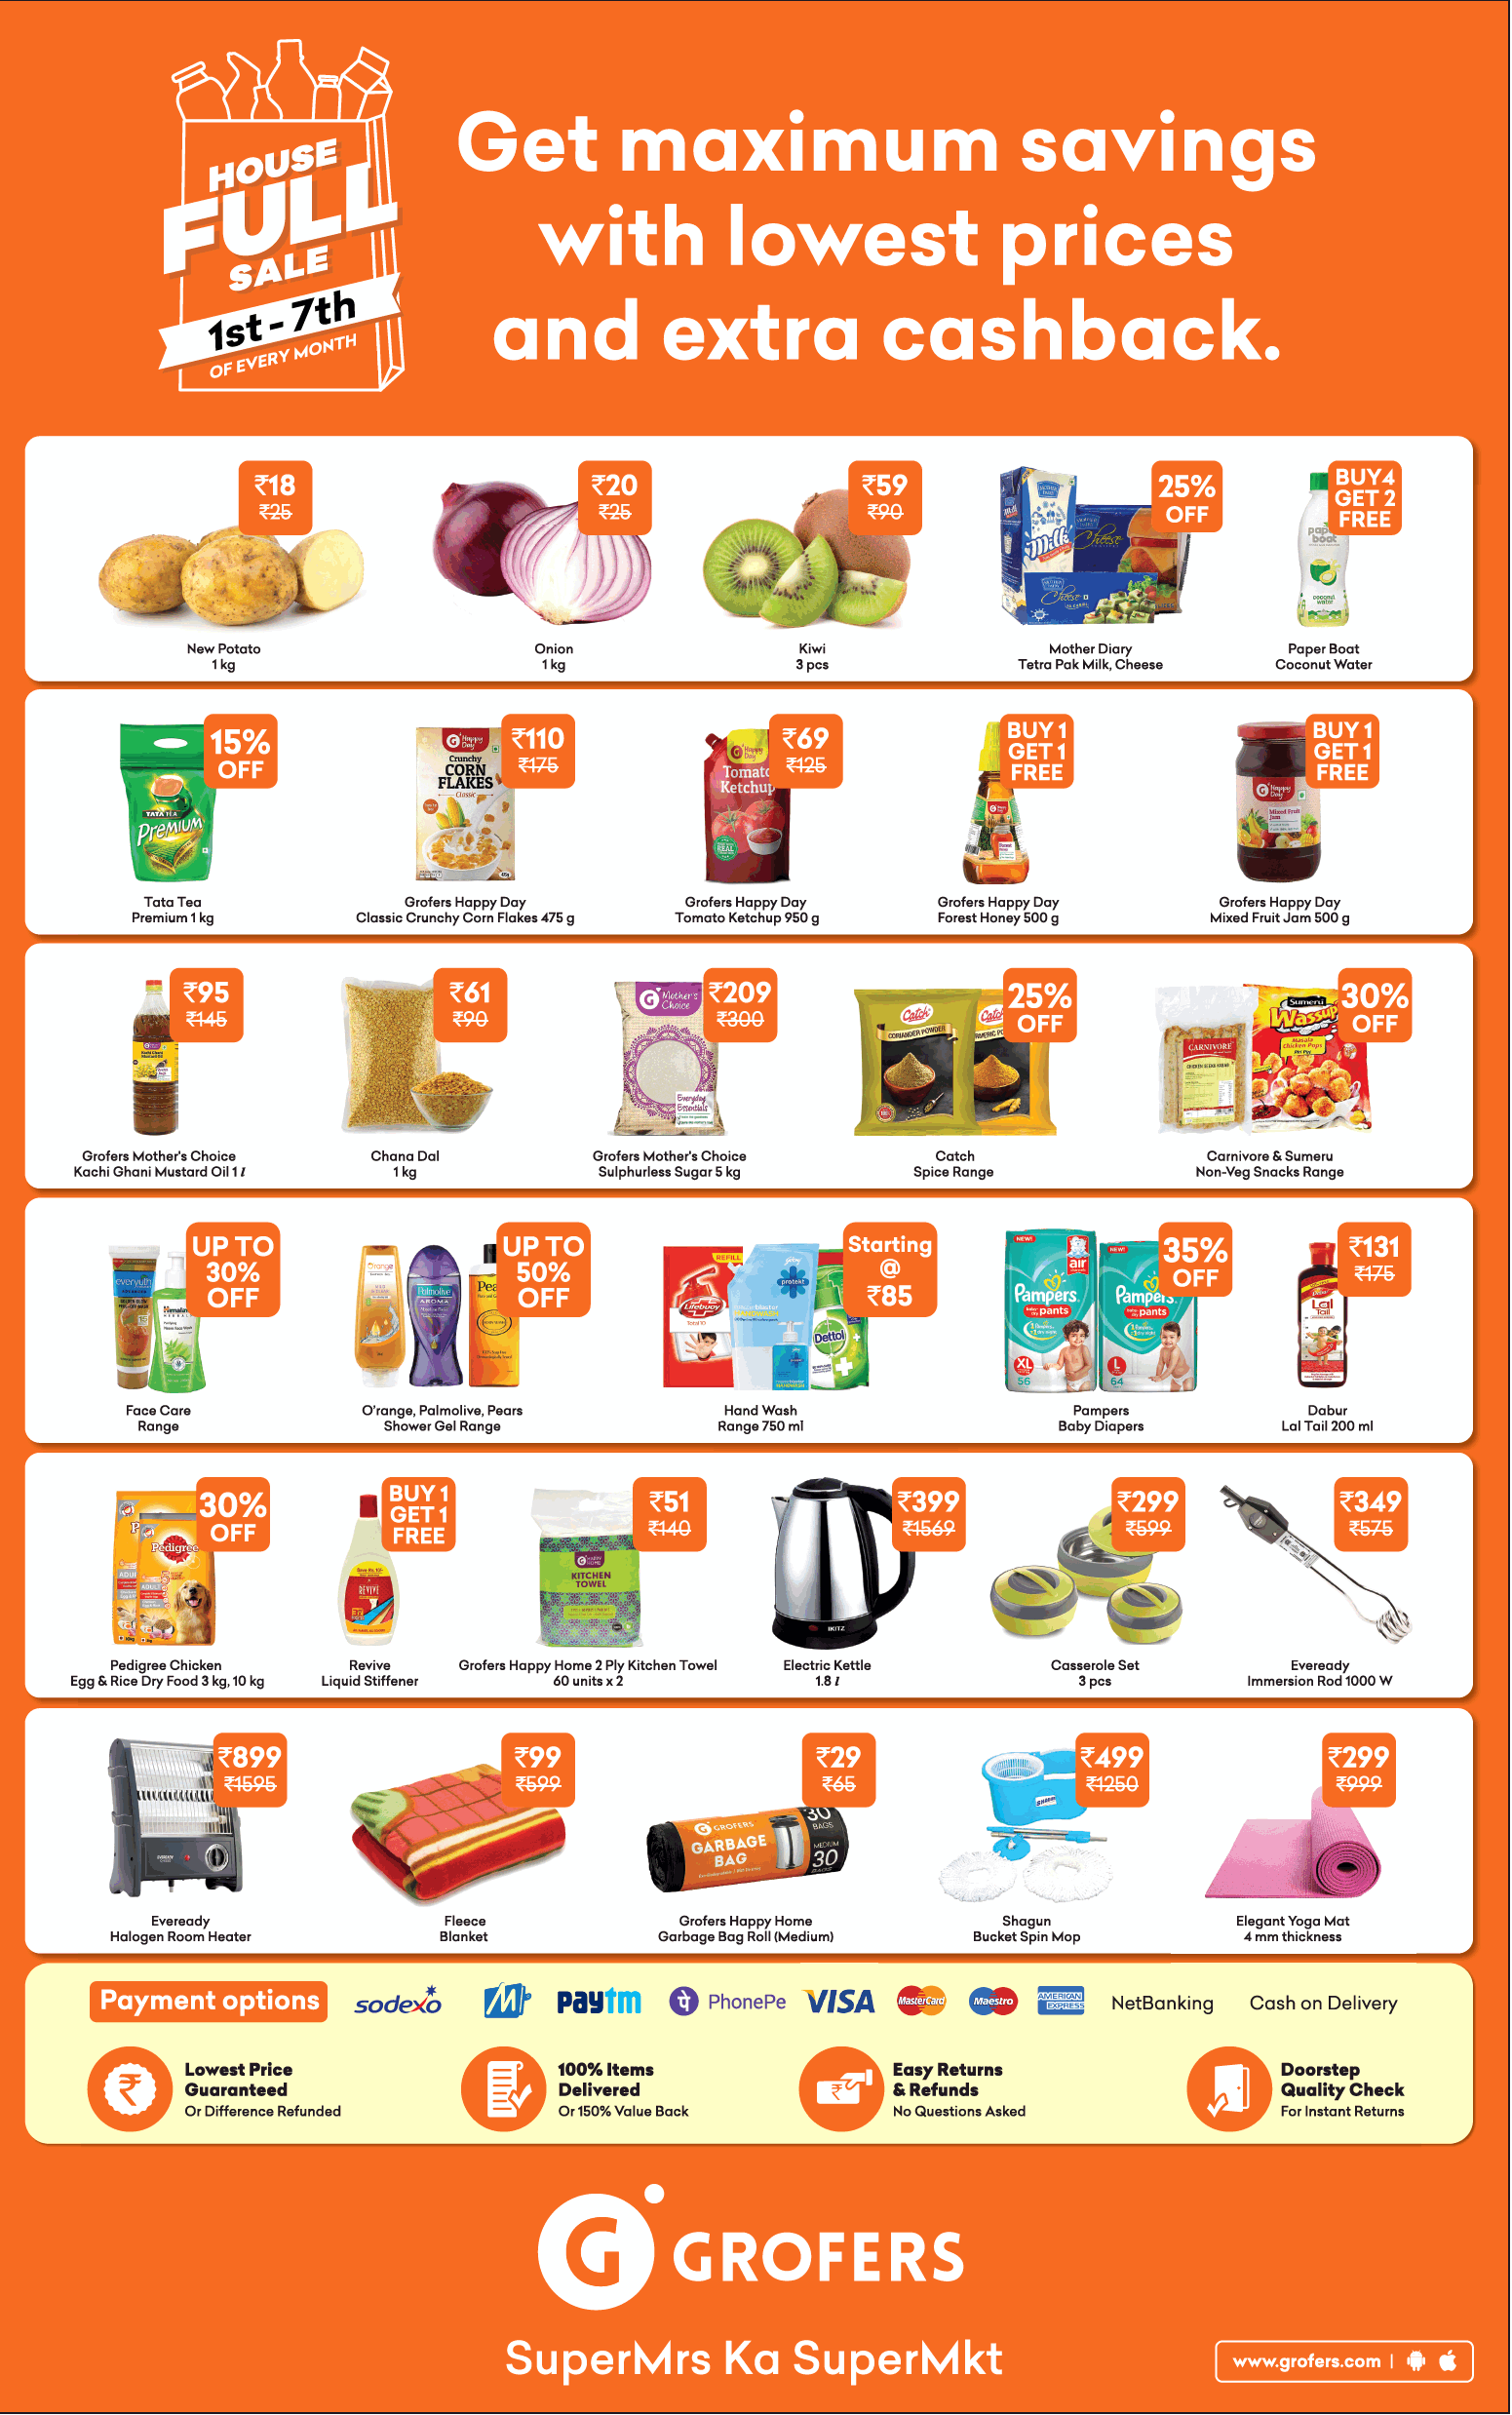 grofers-get-maximum-savings-with-lowest-prices-and-extra-cashback-ad-times-of-india-delhi-01-12-2018.png